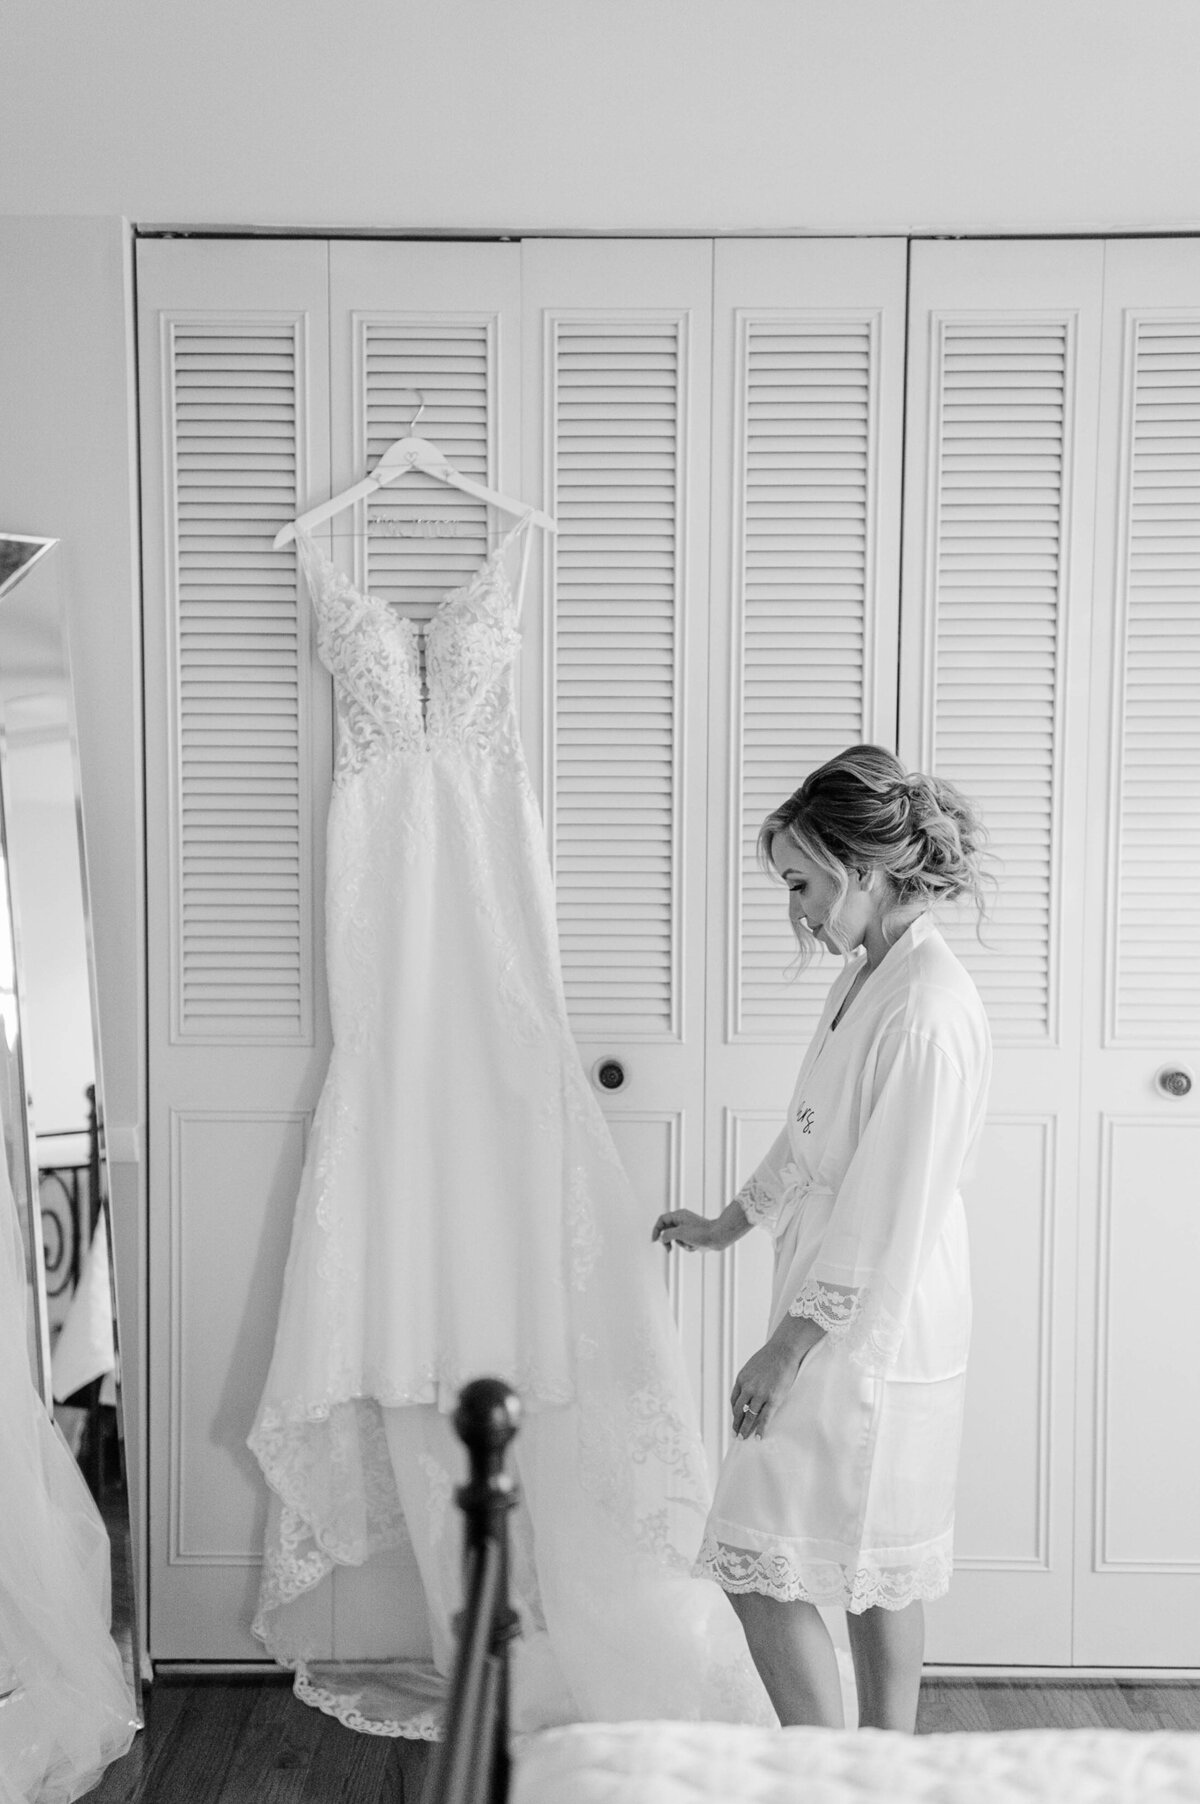 Jennifer Bosak Photography - DC Area Wedding Photography - DC, Virginia, Maryland - Cindy + Jeff Wedding - 7